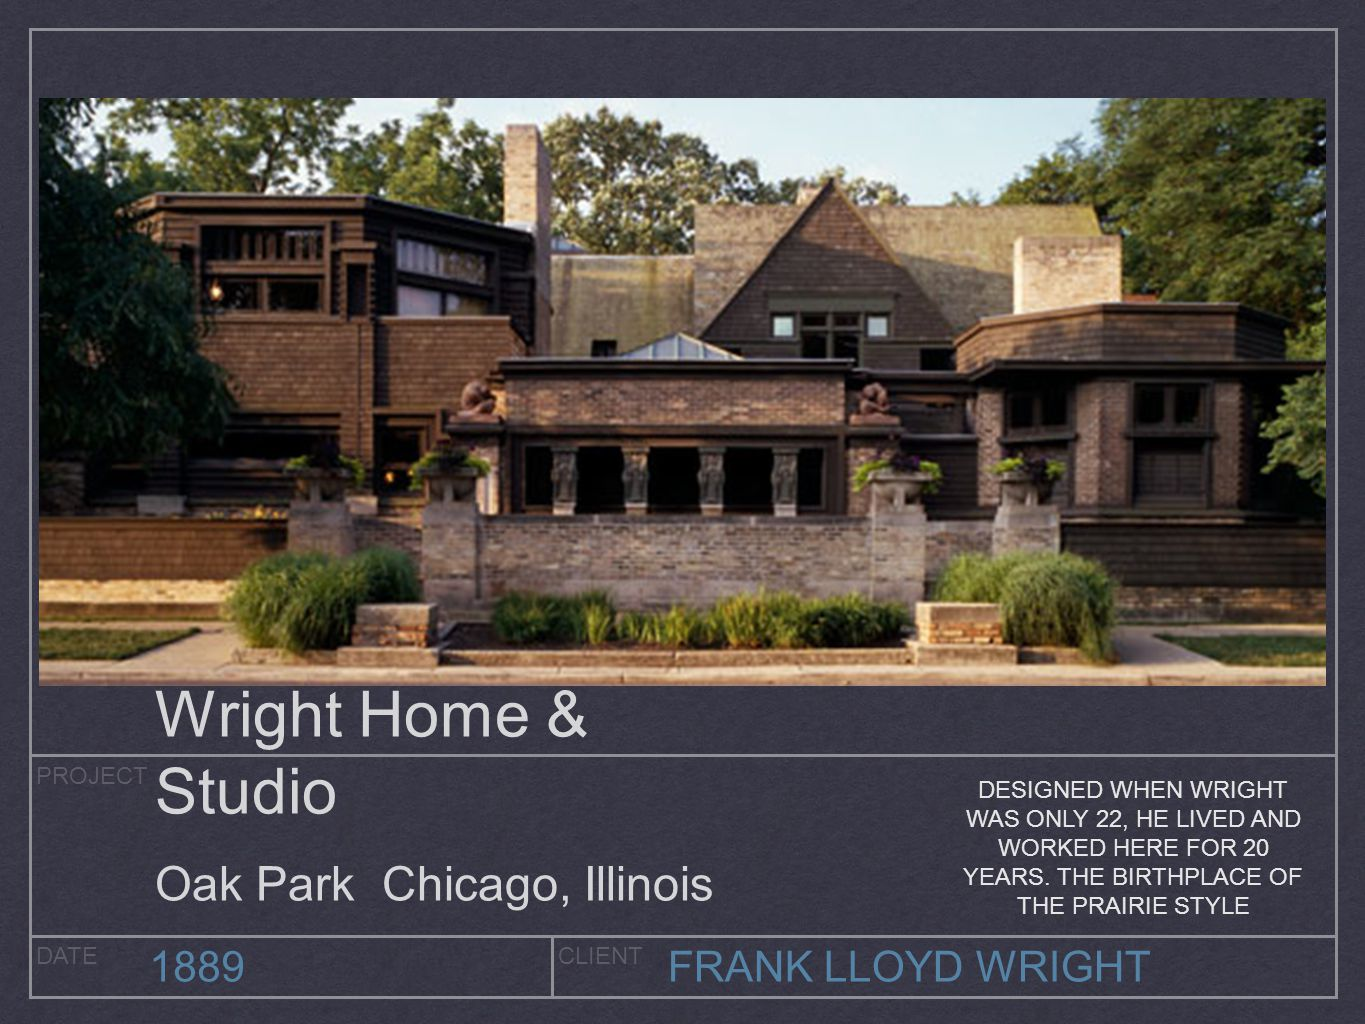 PROJECT DATECLIENT 1889FRANK LLOYD WRIGHT Wright Home & Studio Oak Park Chicago, Illinois DESIGNED WHEN WRIGHT WAS ONLY 22, HE LIVED AND WORKED HERE F